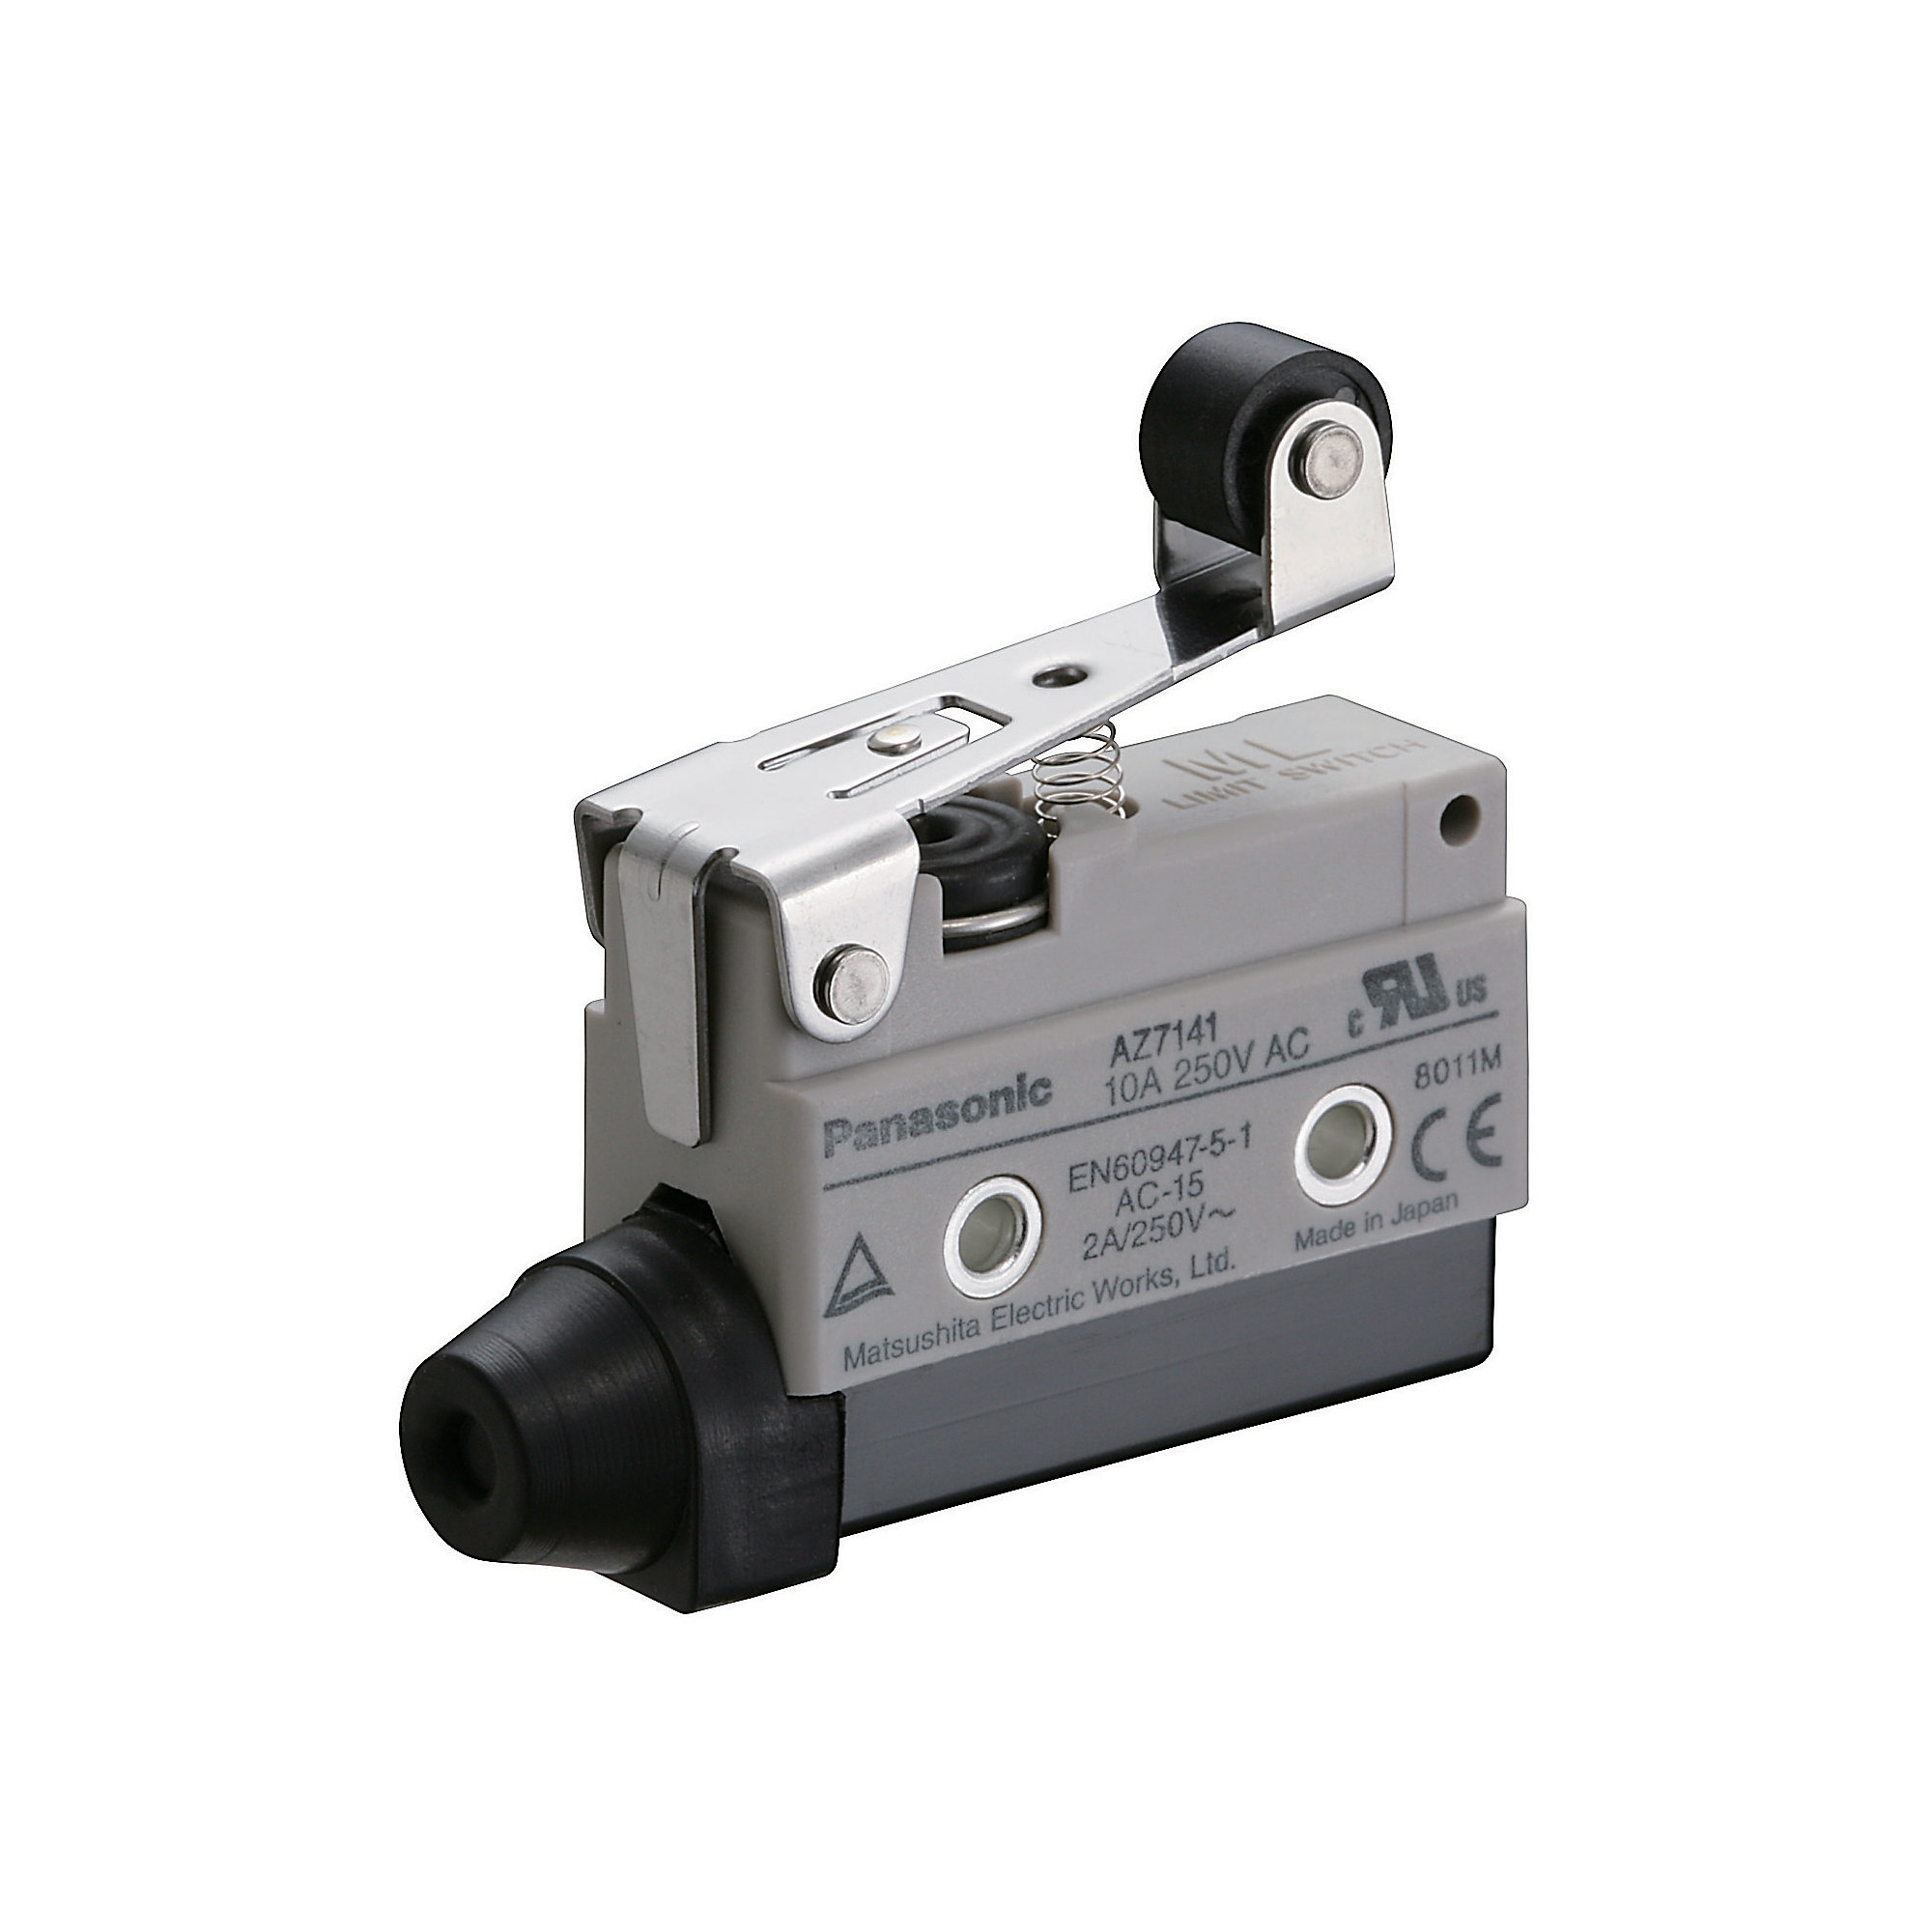 Ejector Plate Return Detection Switches -Enduring Type- | MISUMI ...